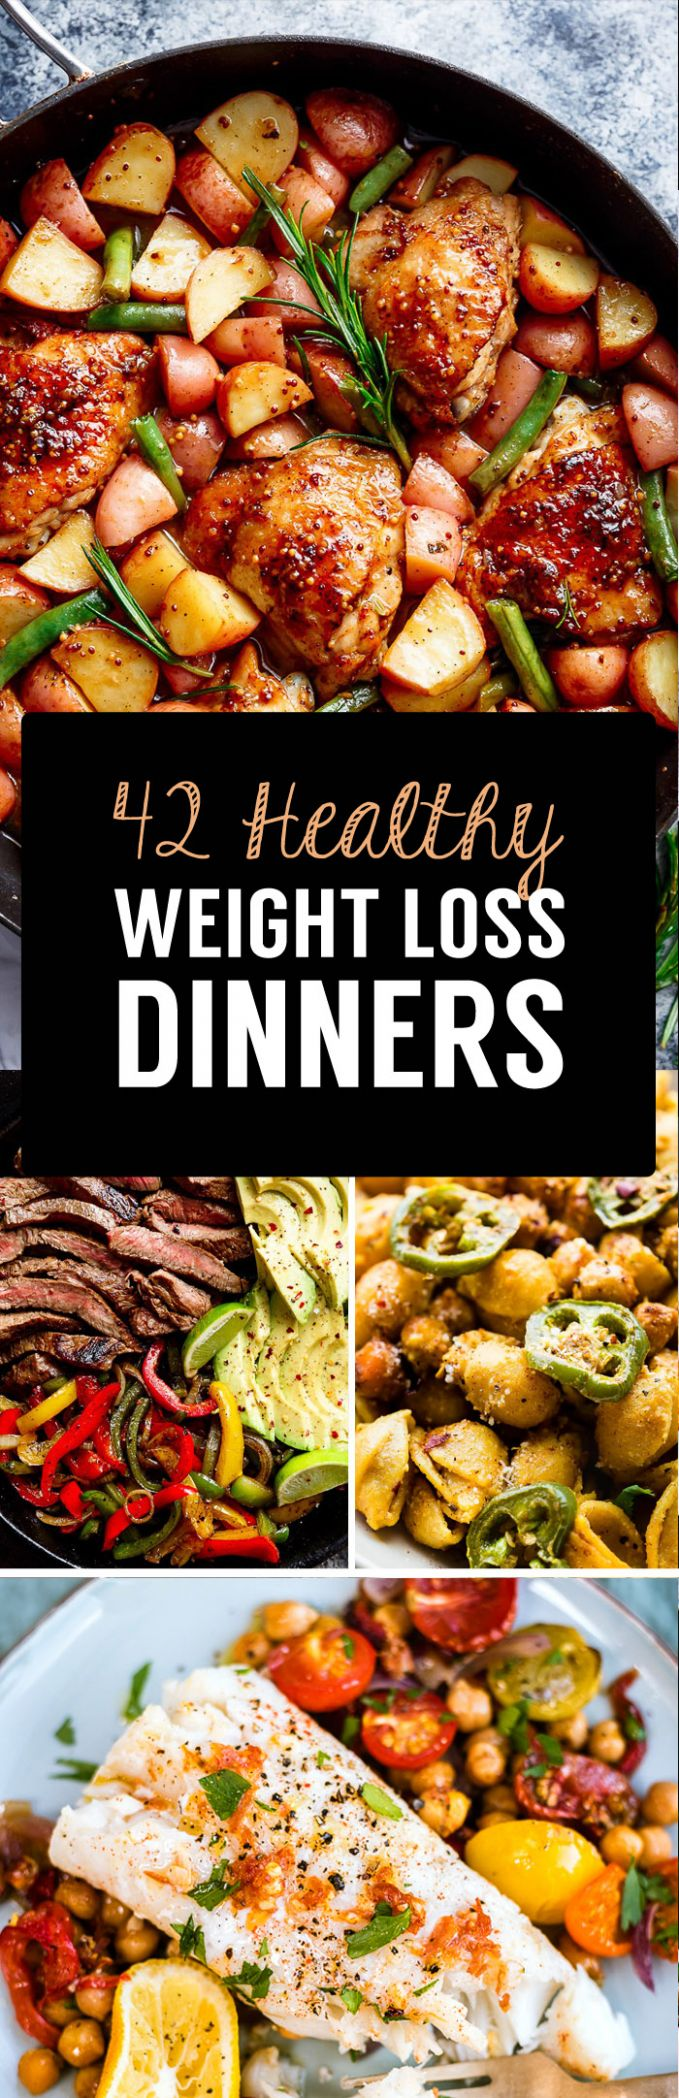 12 Weight Loss Dinner Recipes That Will Help You Shrink Belly Fat ...